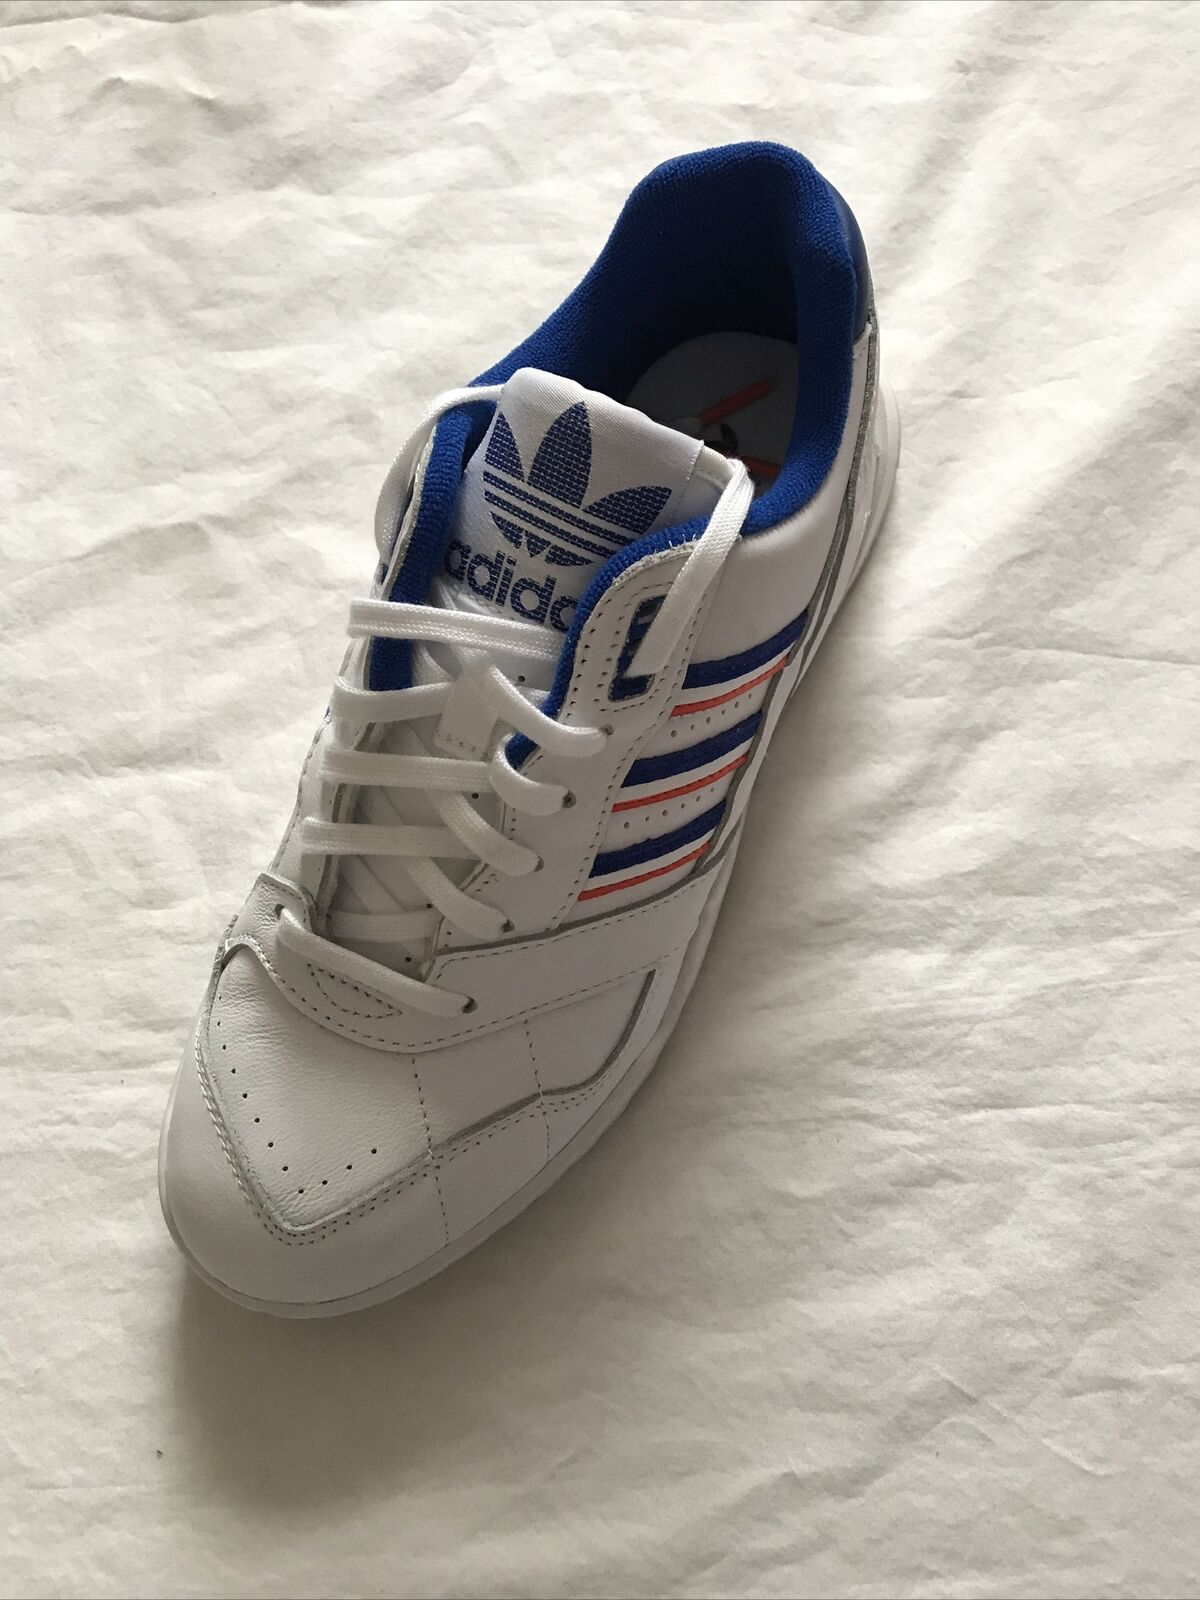 New Adidas Men's / Old Boys Leather Trainers Size UK 6 Euro 39.5